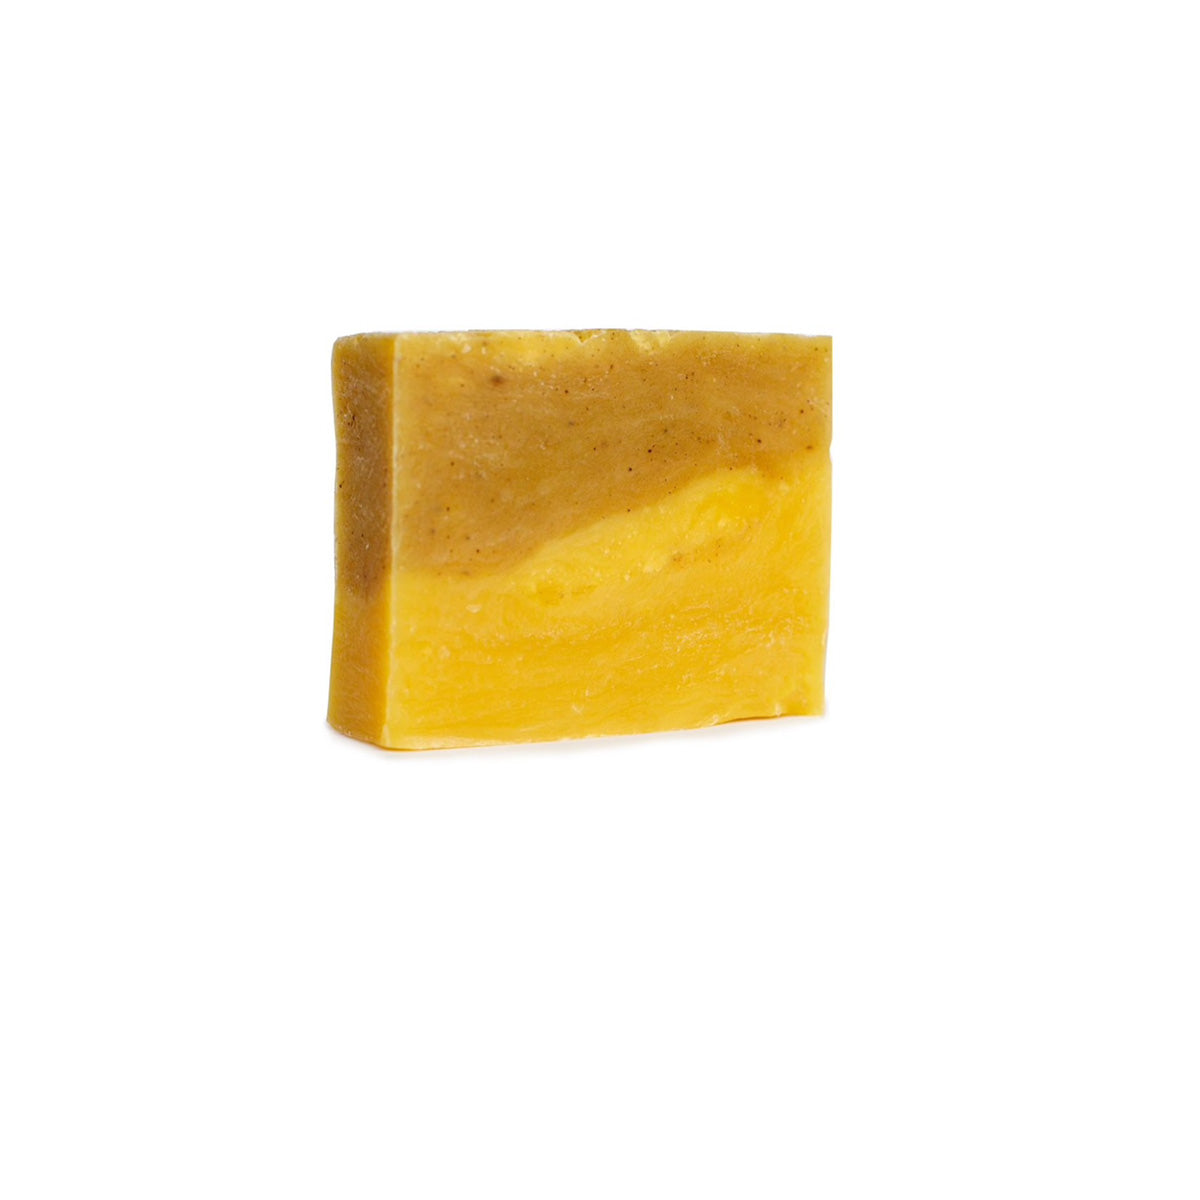 Sunflower Soap Bar w/Cloth